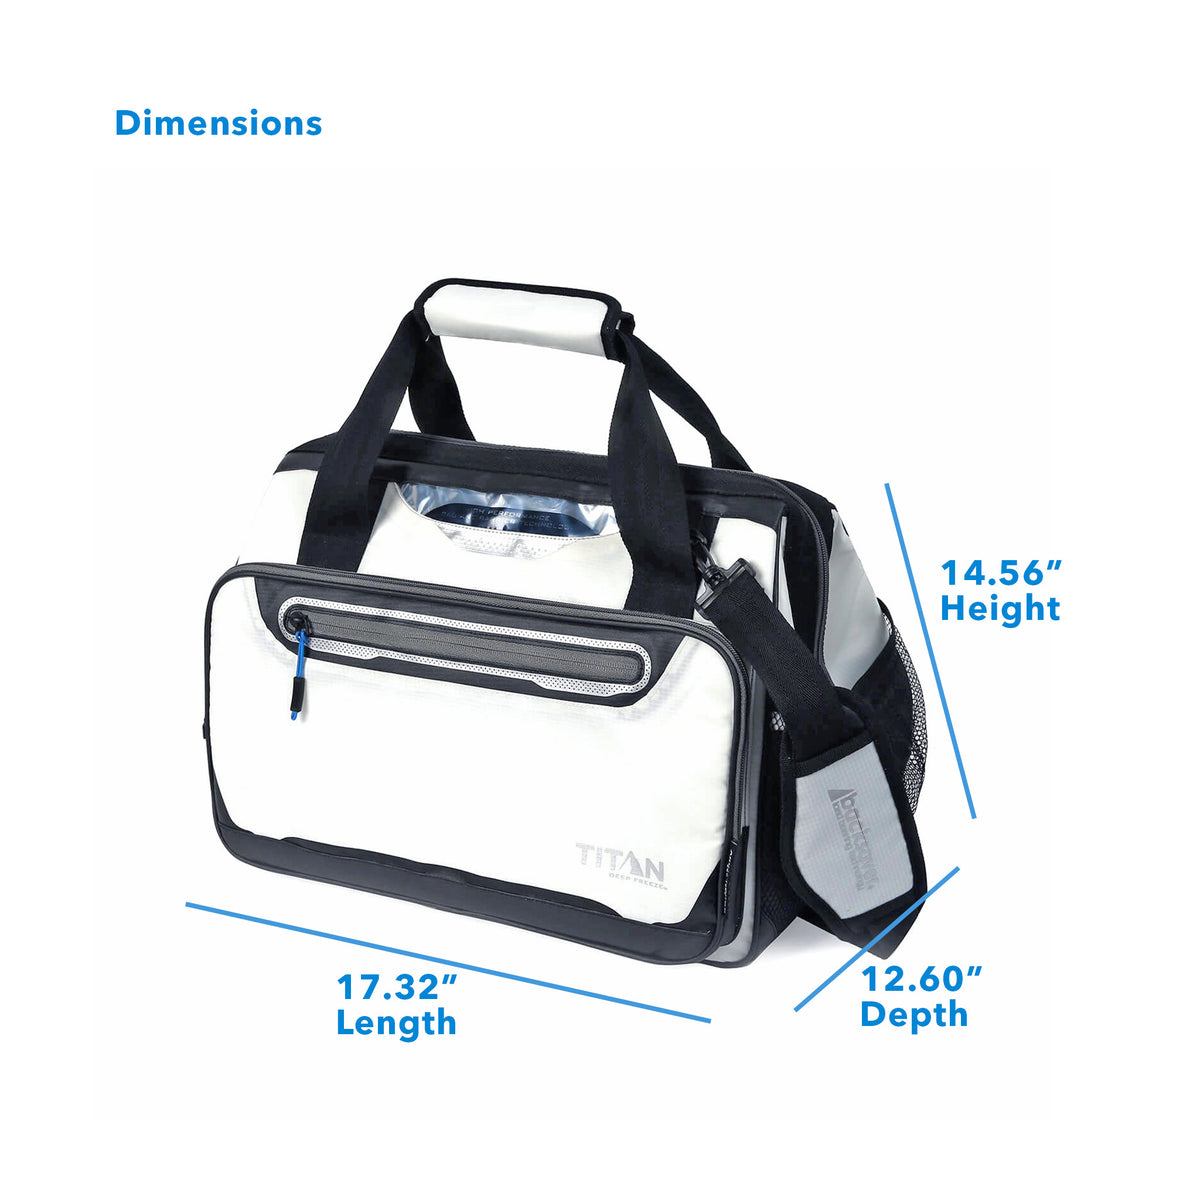 "Titan Deep Freeze® 40 Can Duffel - White - Dimensions: (L x D x H) 17.32"" x 12.60"" x 14.56"""